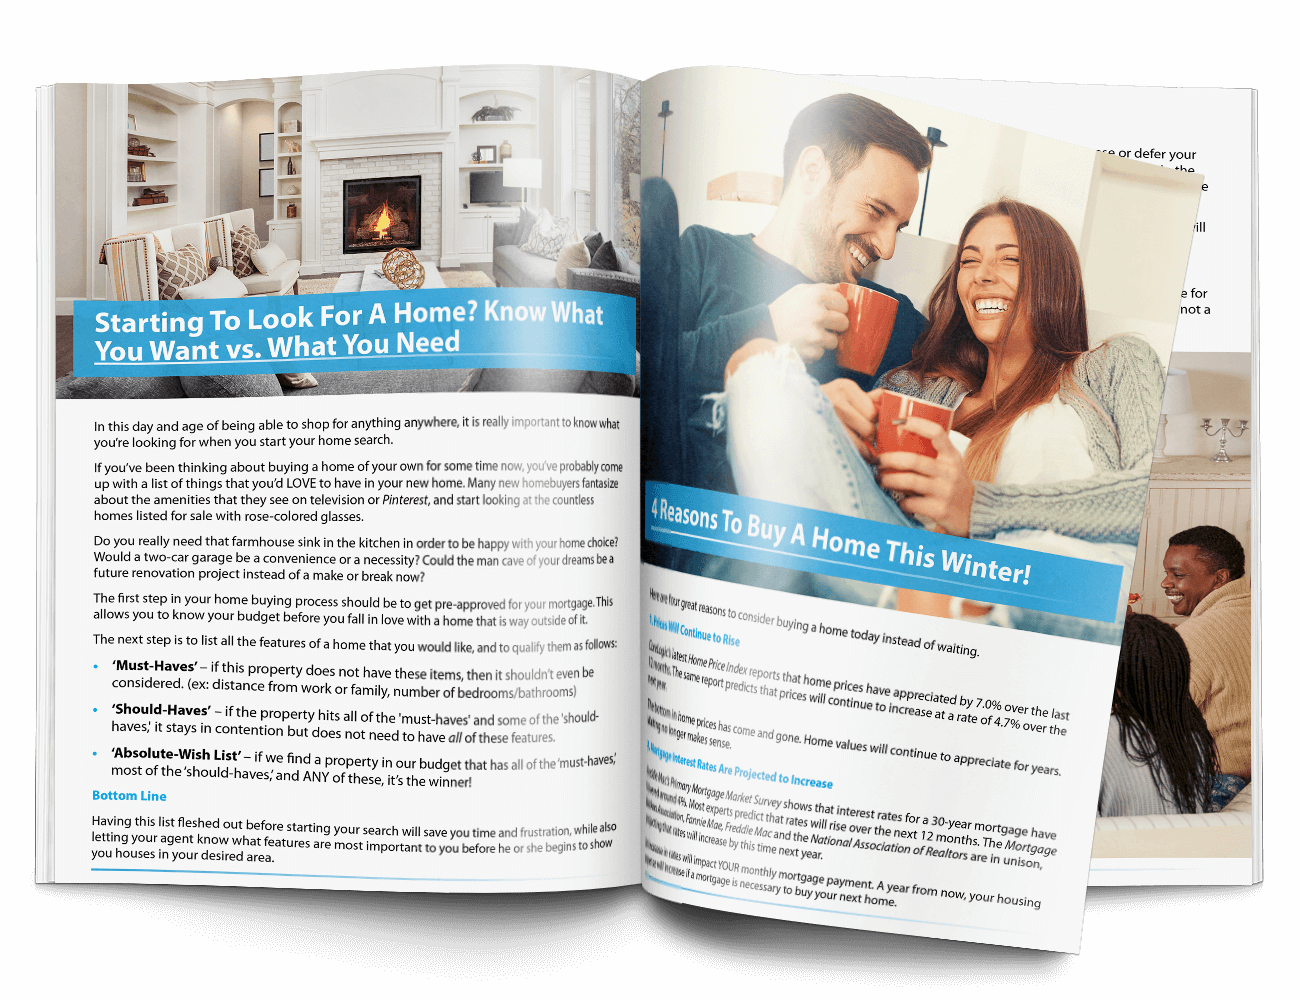 Home Buyer's Guide from Nina Hollander with RE/MAX